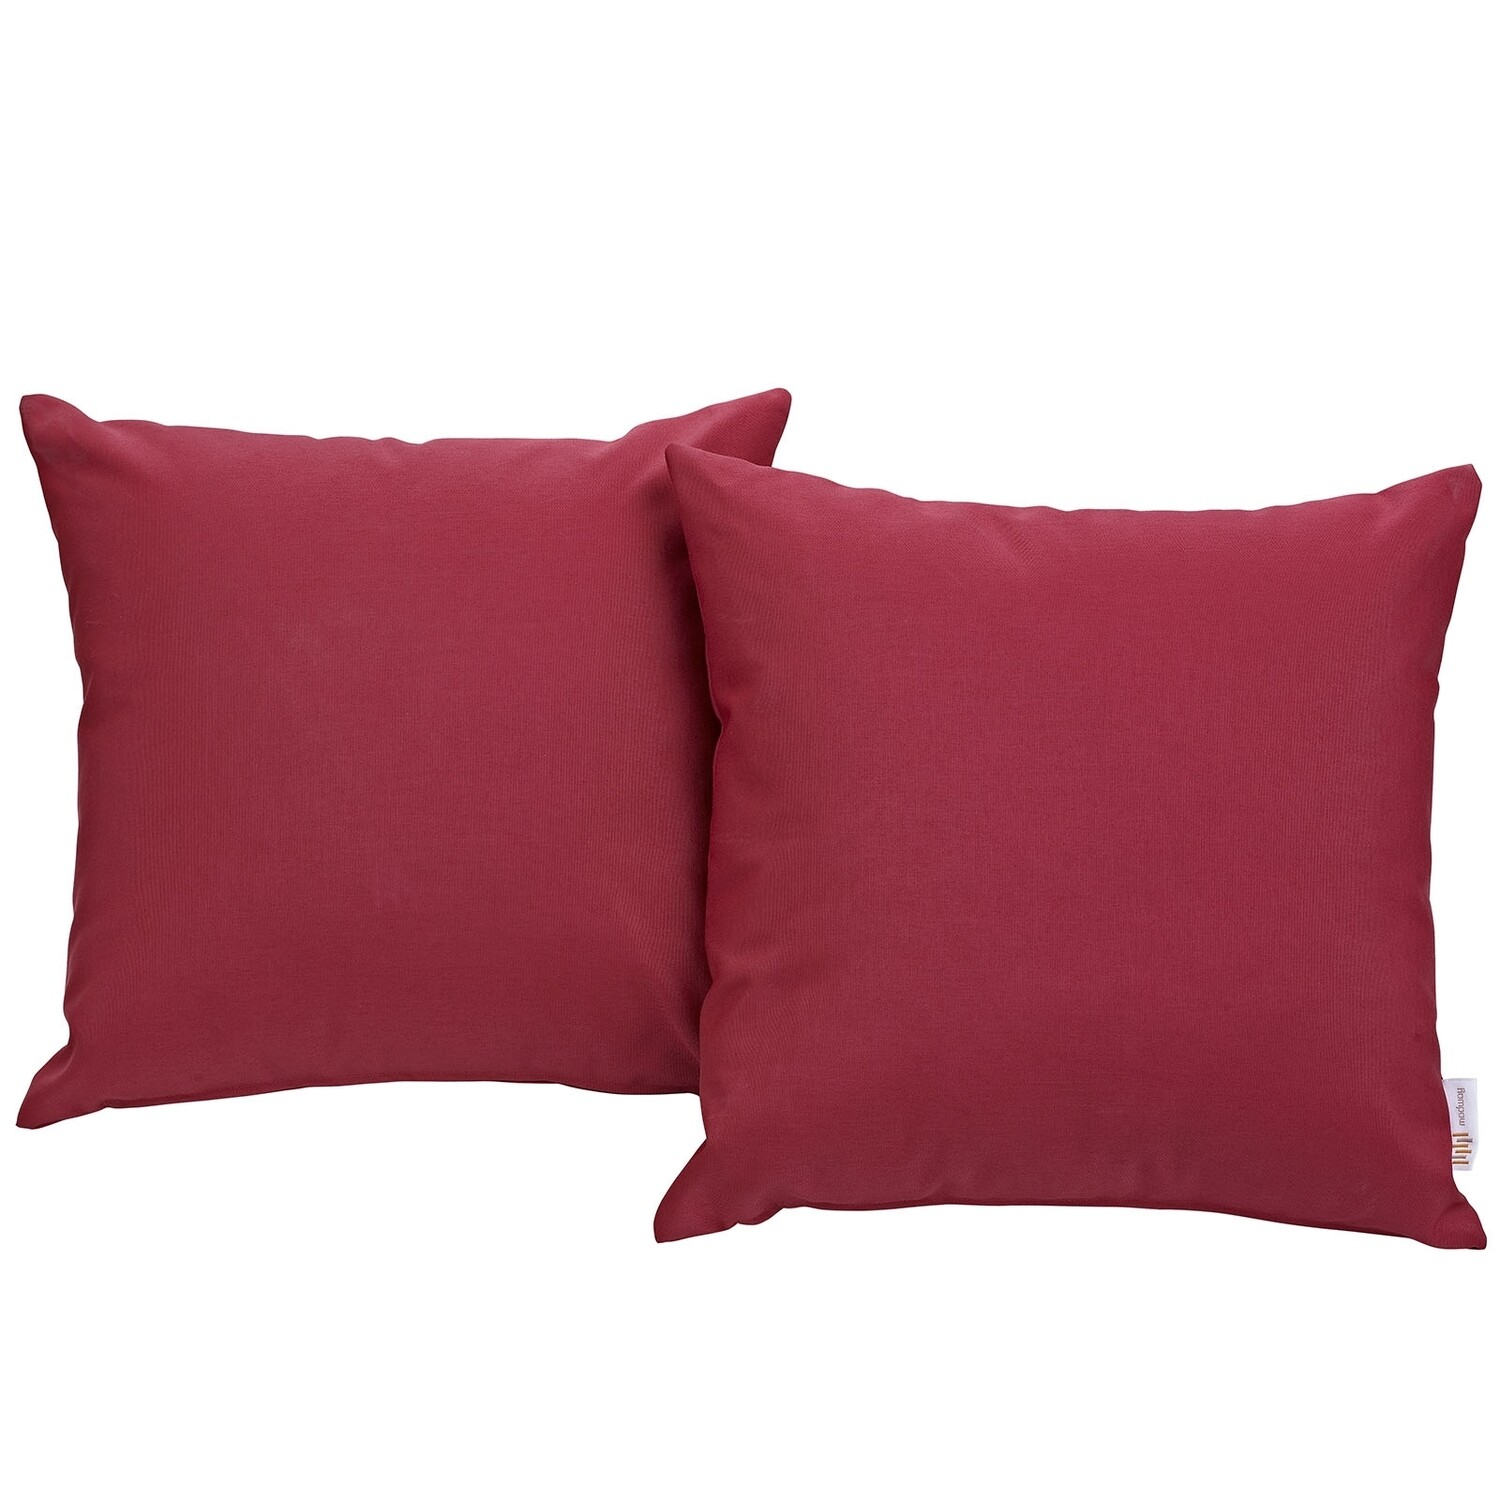 """Hinsdale Patio 2 Piece Pillow Set  17"""" x 17"""" in Red"""